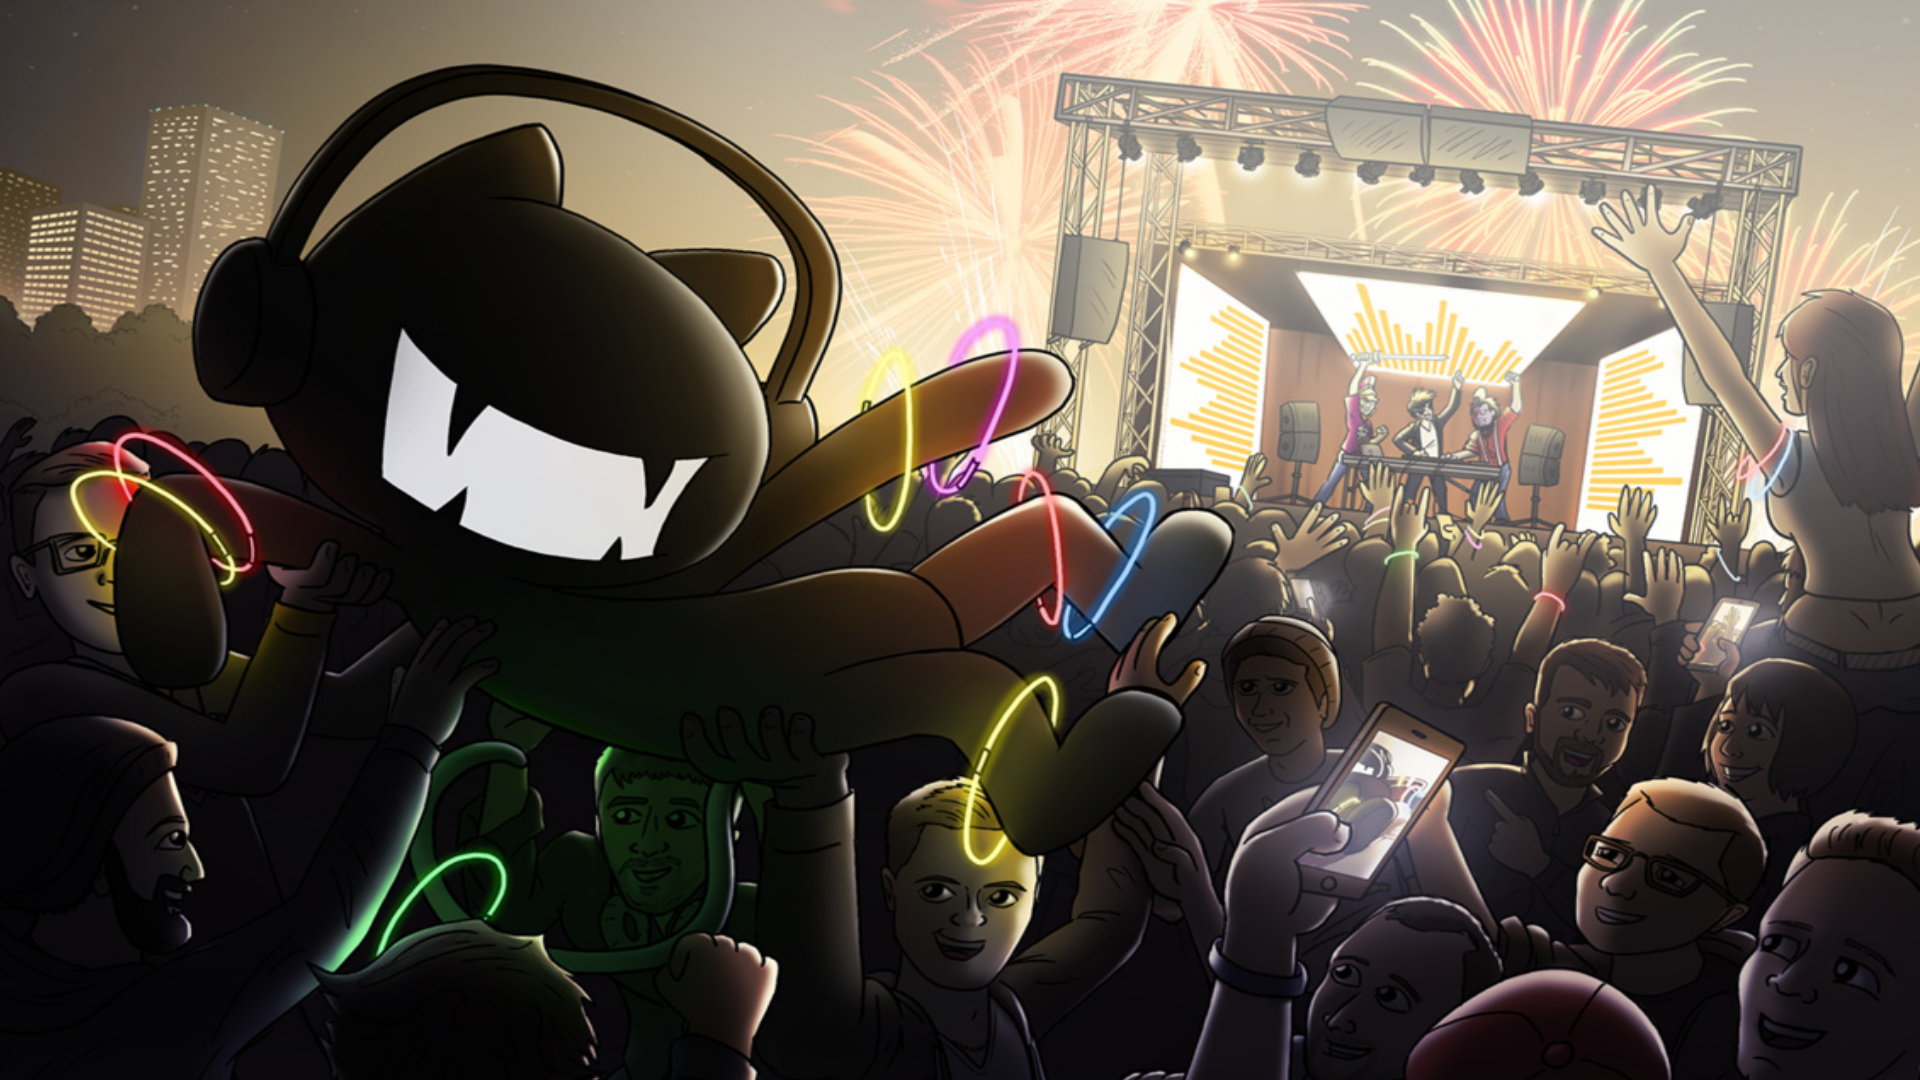 Fotos Pantalla Con Dibujos: Monstercat Wallpaper Hd - Buscar Con Google